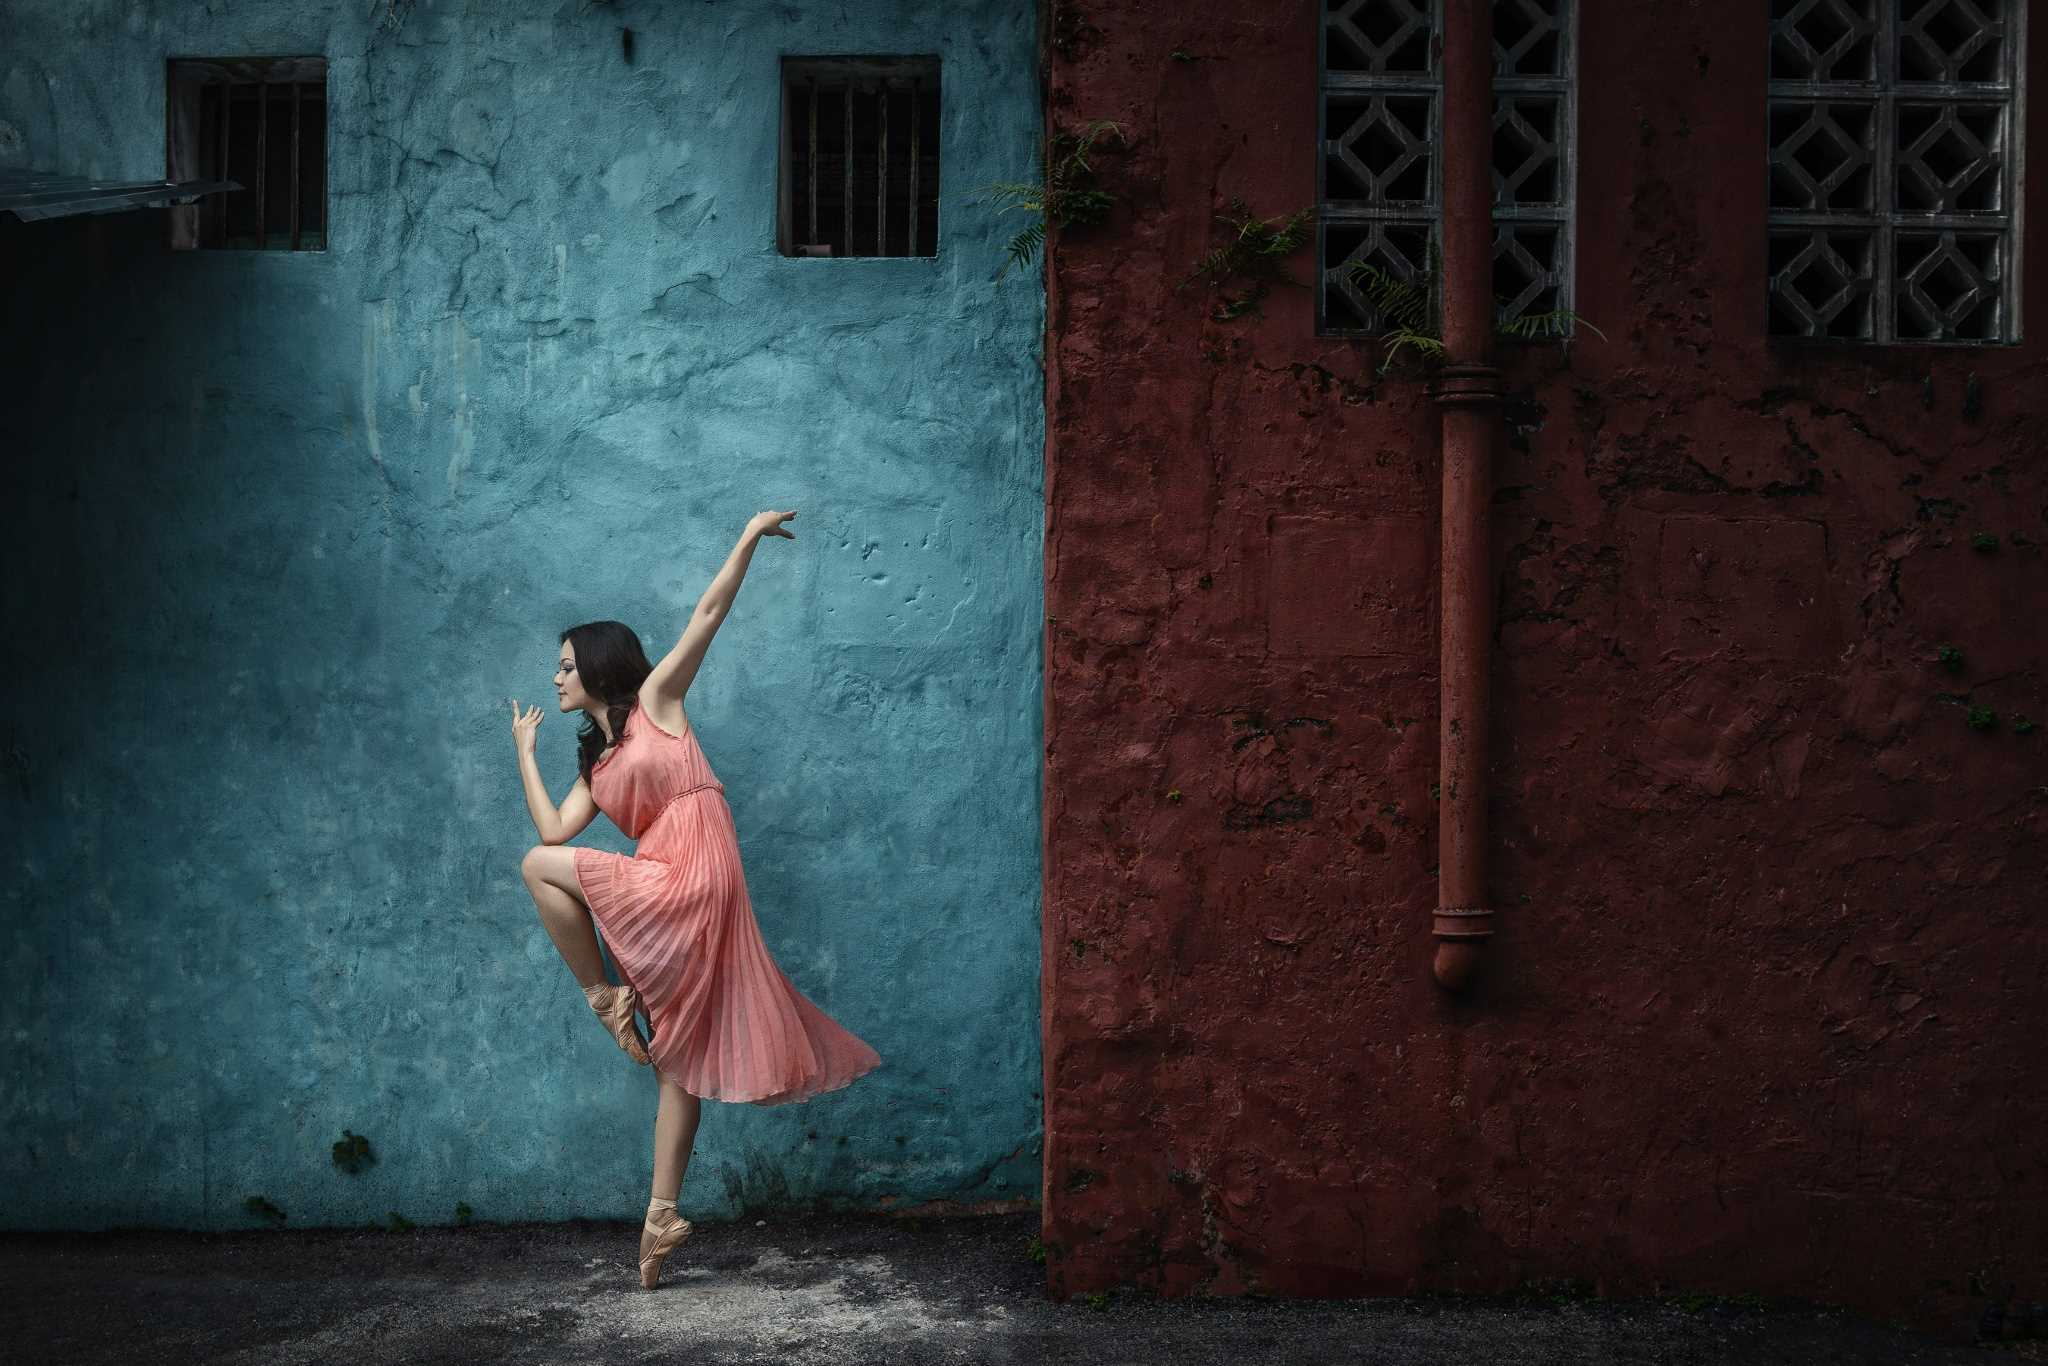 Photography by Lau Yew Hung